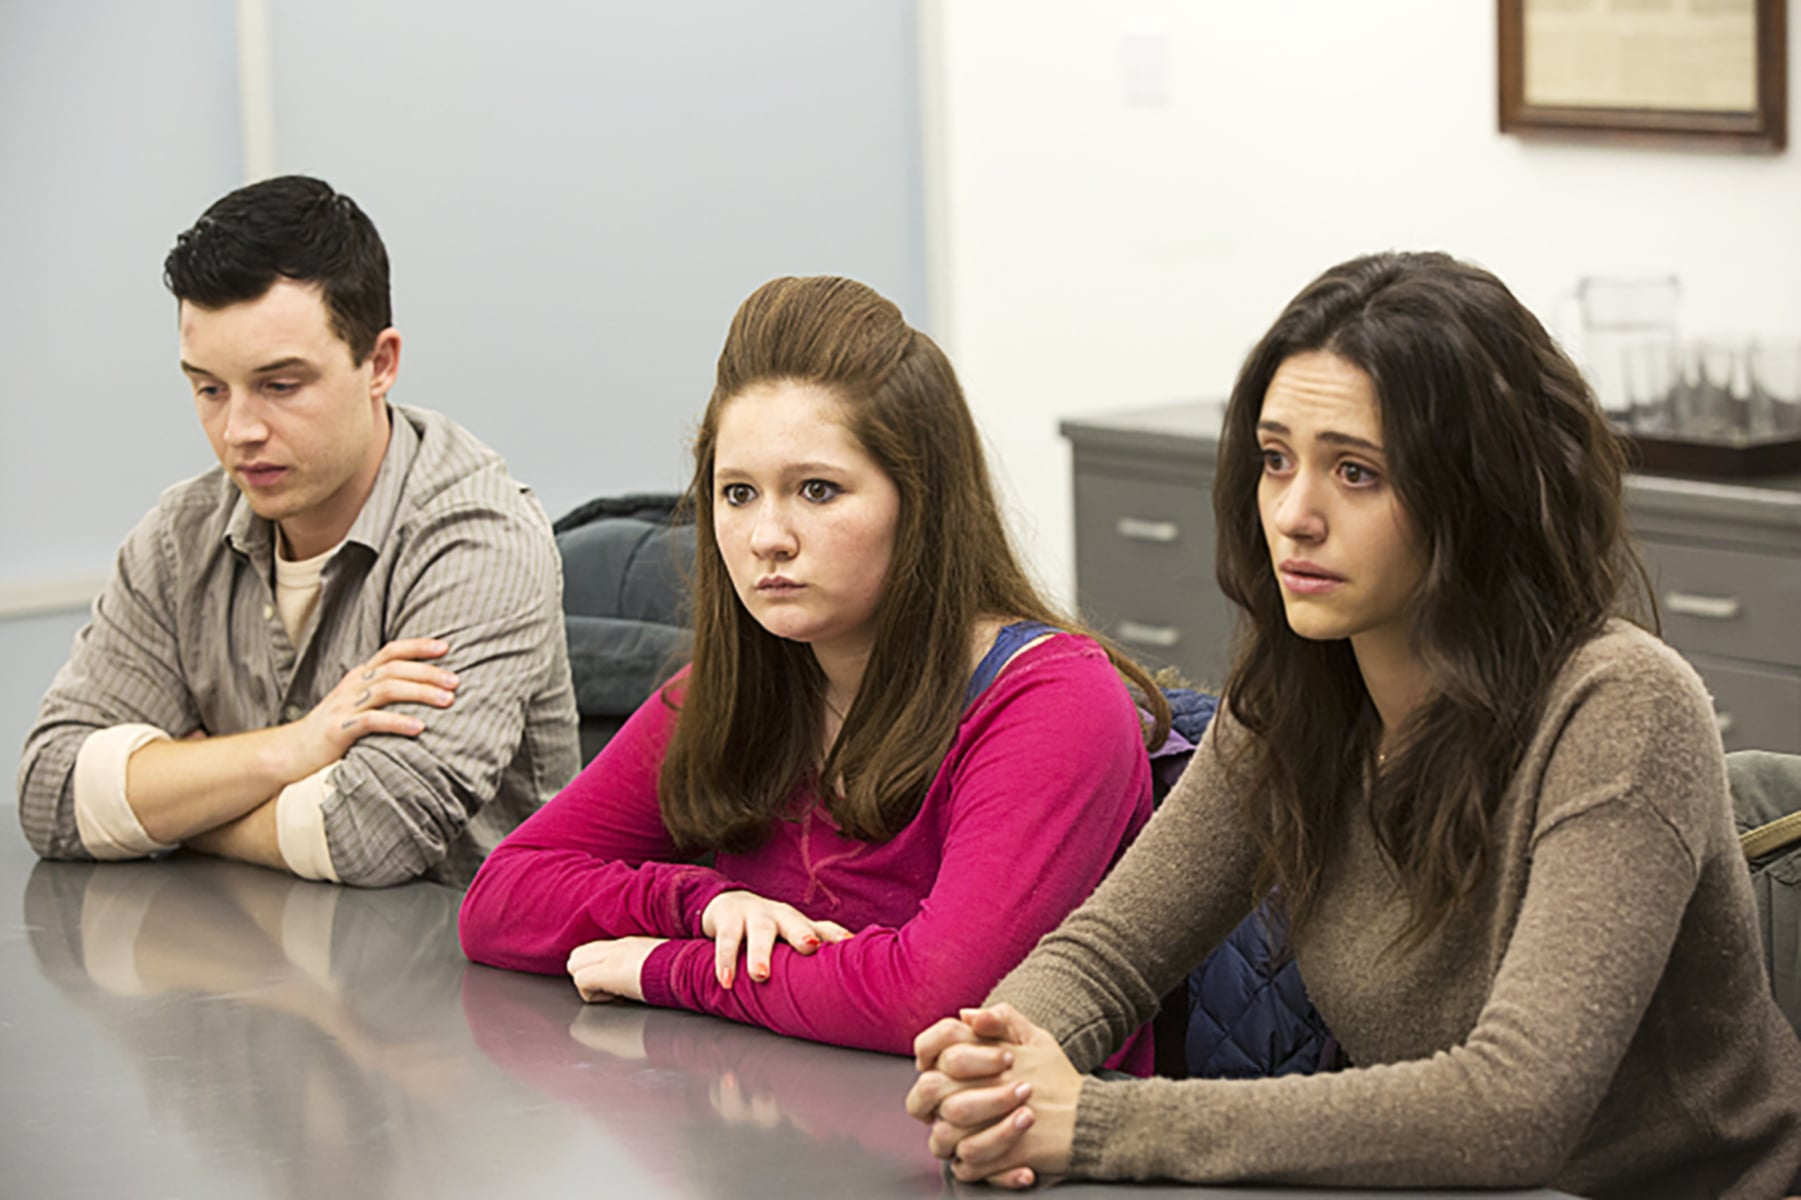 SHAMELESS, l-r: Noel Fisher, Emma Kenney, Emmy Rossum in 'Drugs Actually' (Season 5, Episode 11, aired March 29, 2015). ph: Monty Brinton/Showtime/courtesy Everett Collection